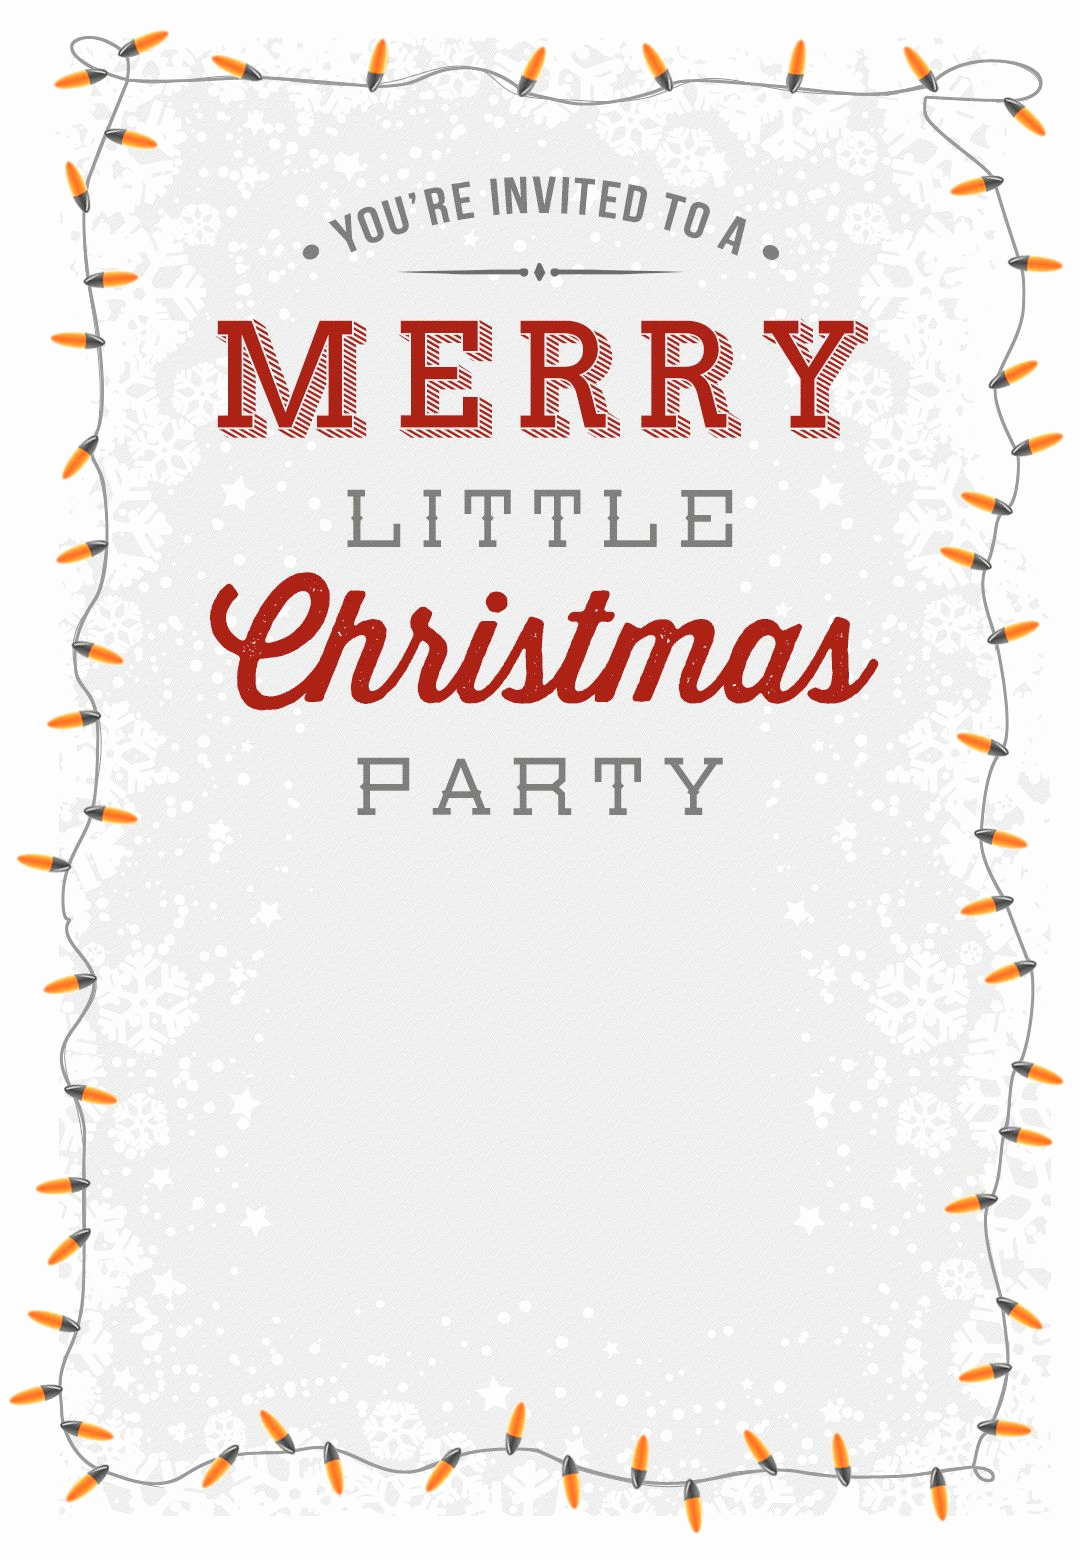 Free Holiday Invitation Templates Elegant A Merry Little Party Free Printable Christmas Invitation